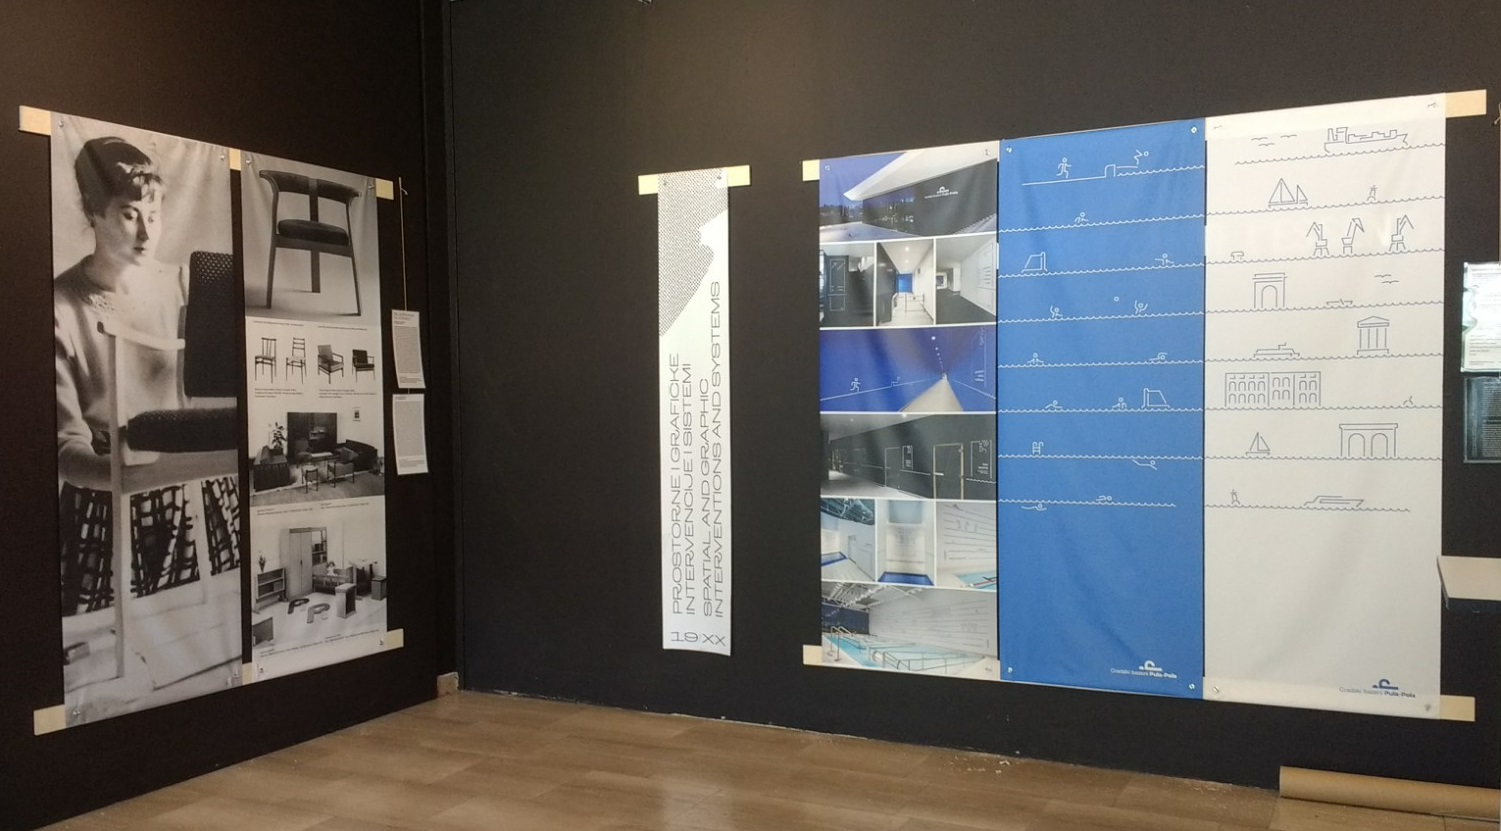 The Review of Croatian Design 19/20 exhibition is open